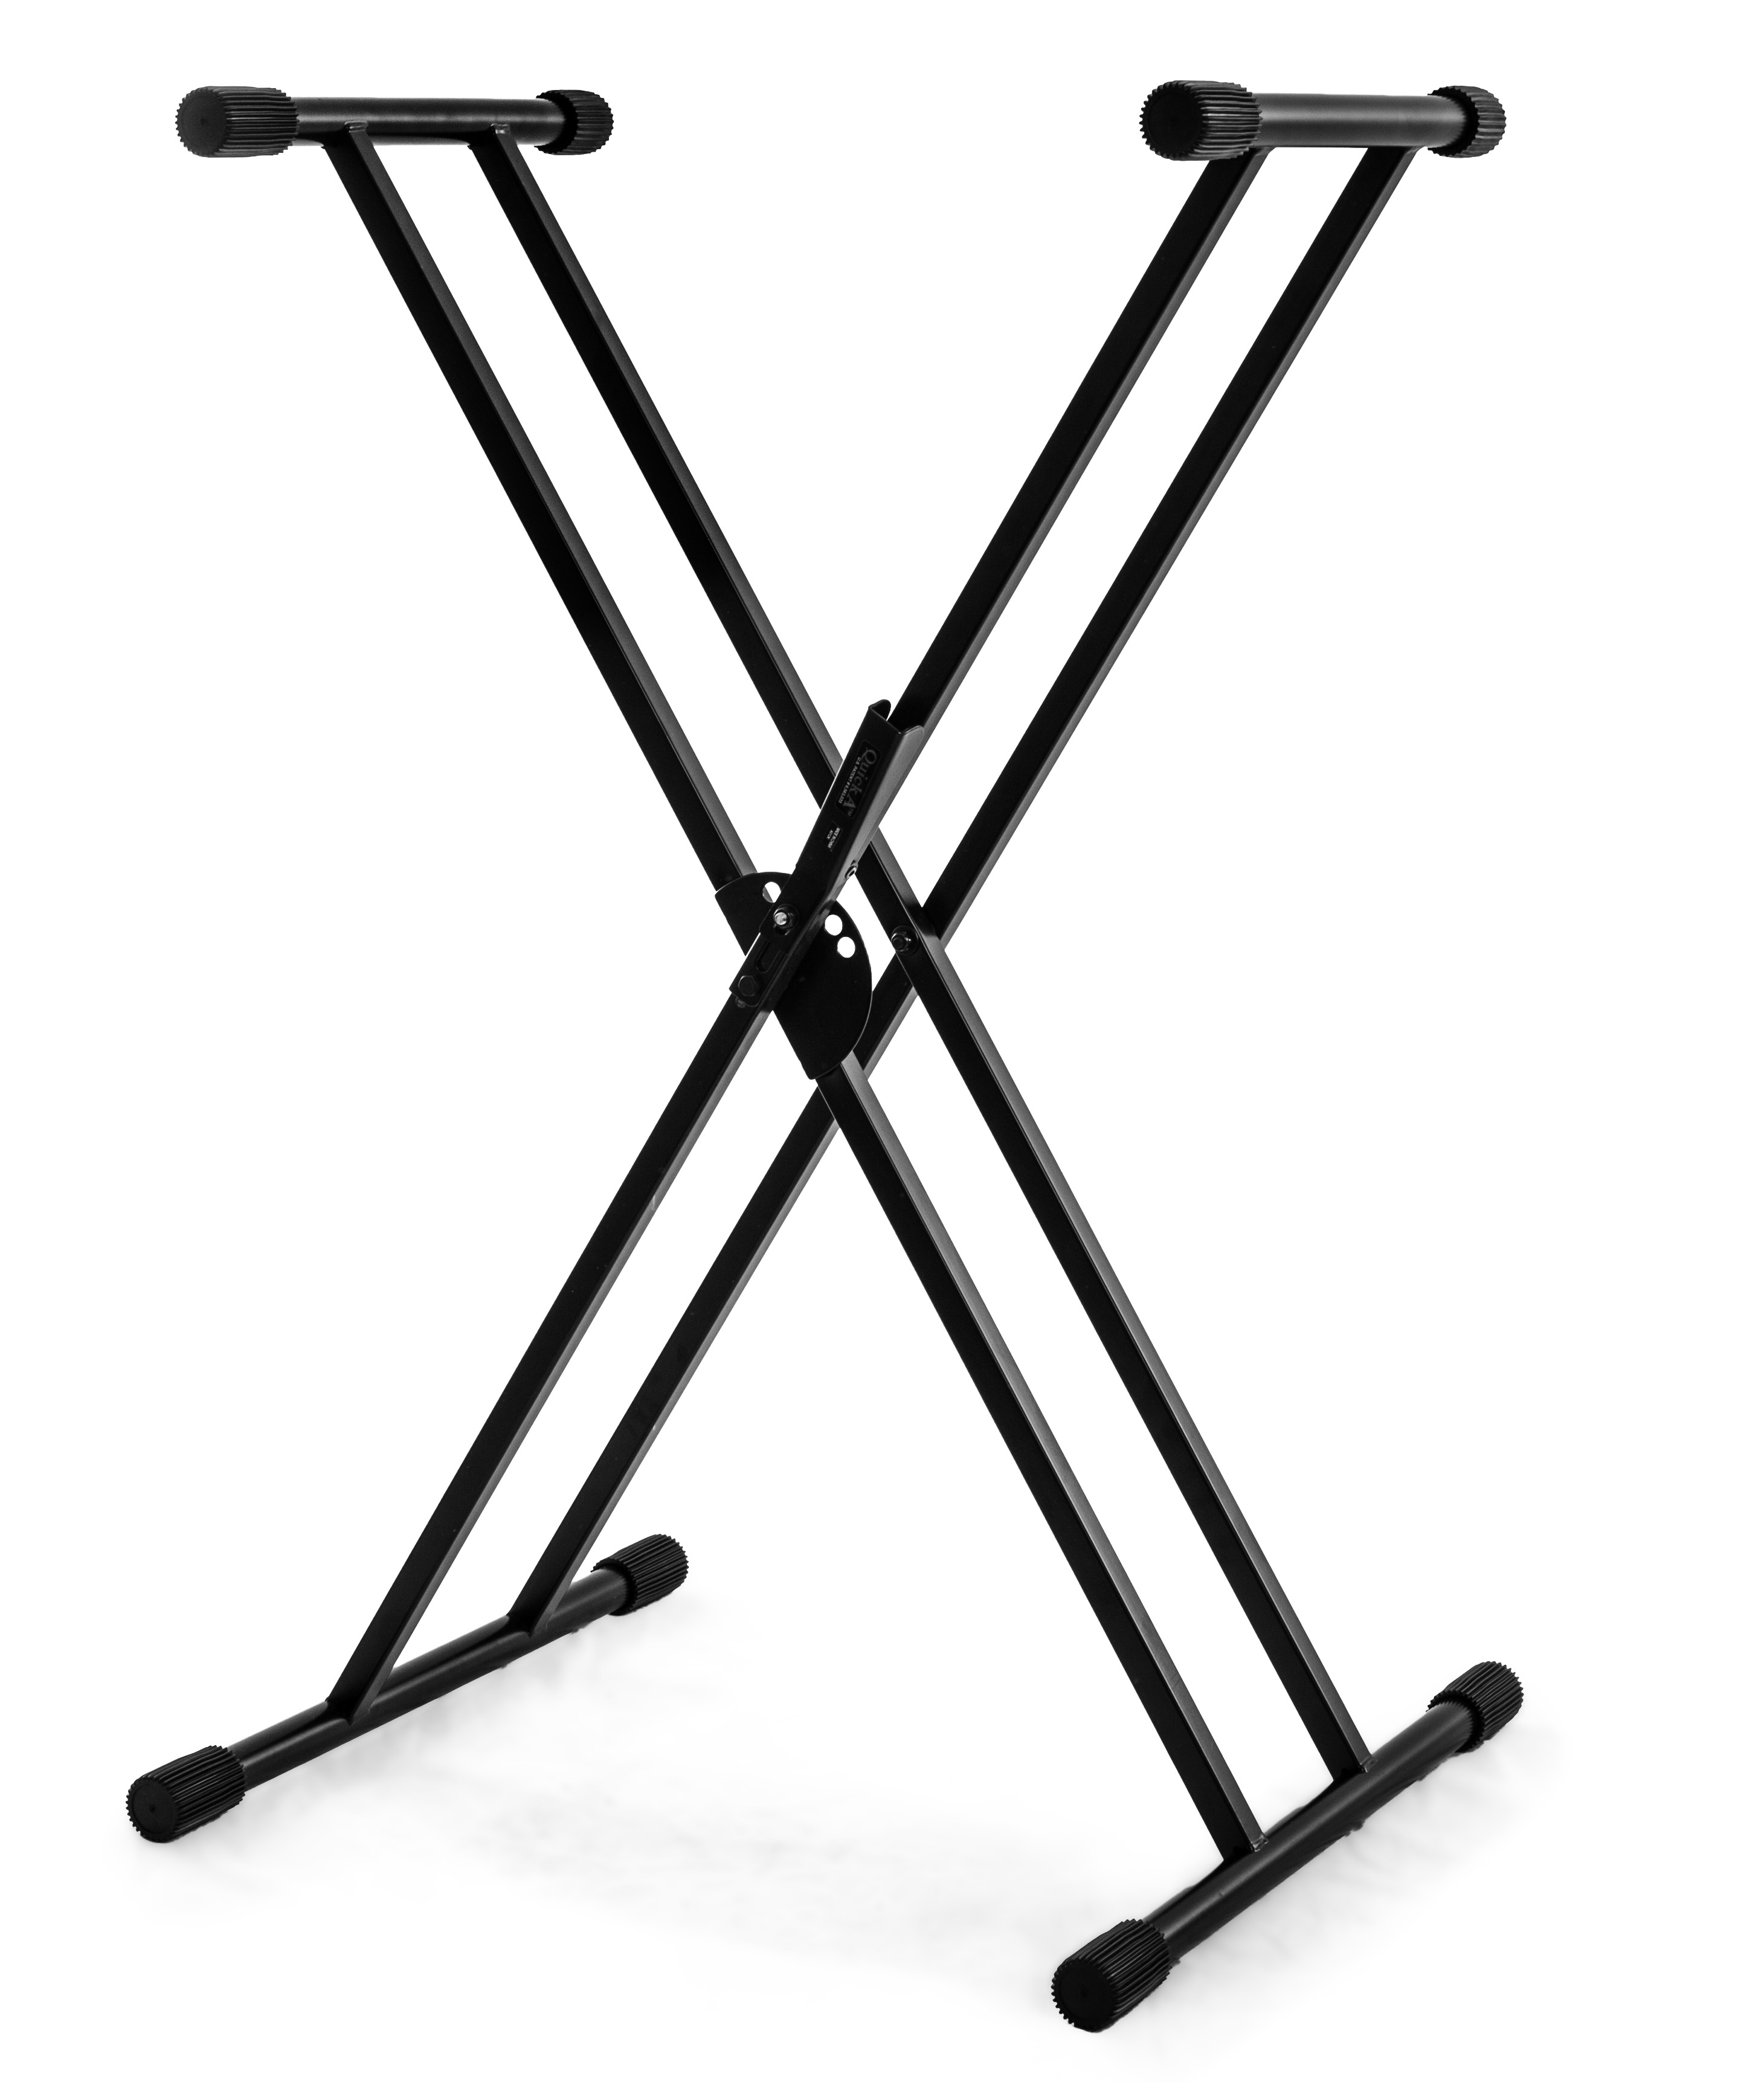 Nomad NKS-K139 Double X-Style Lever Action Keyboard Stand